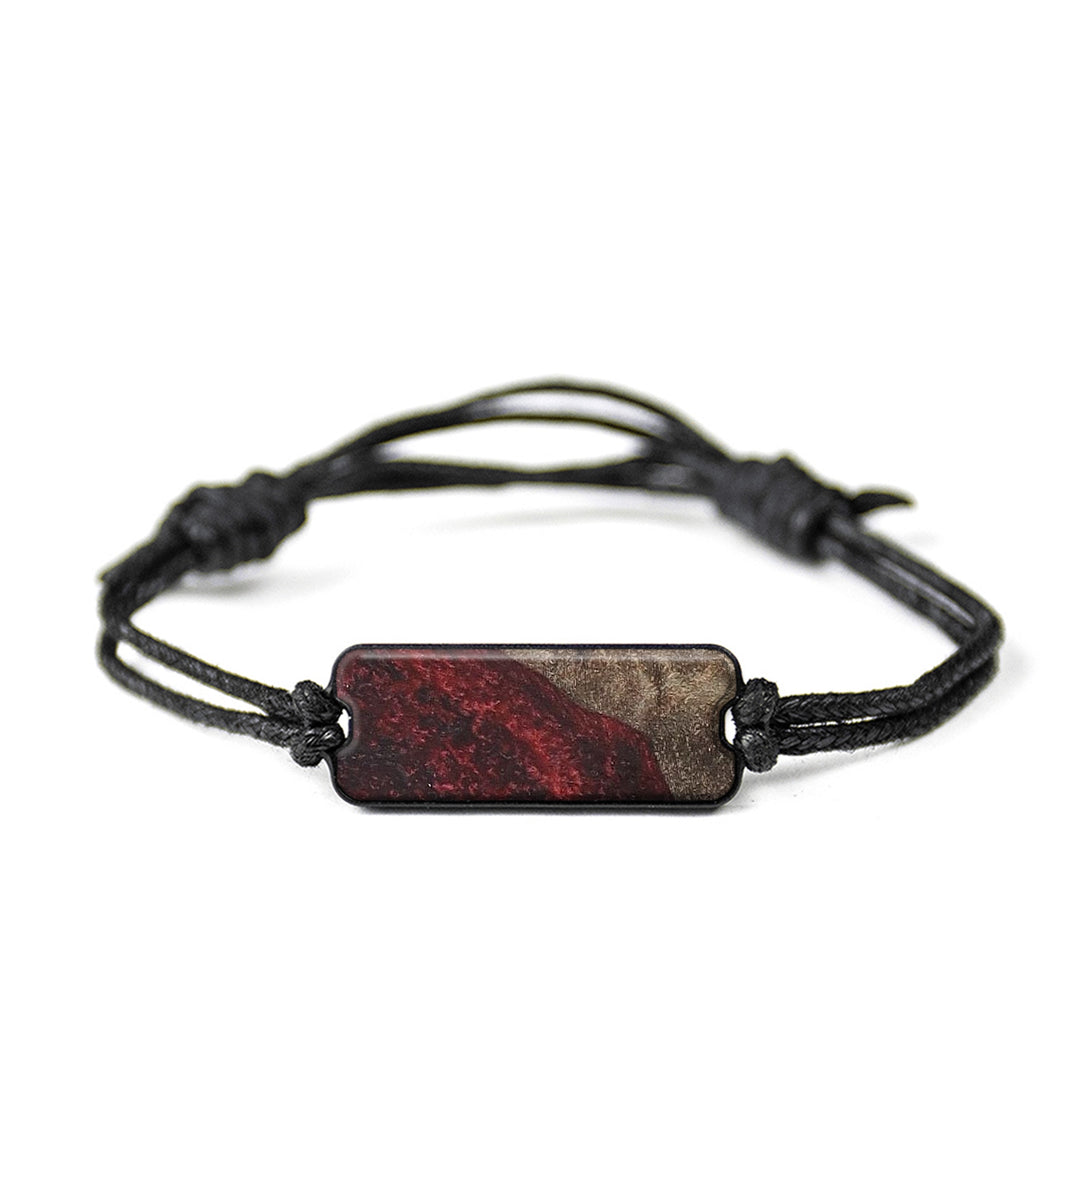 Classic Wood+Resin Bracelet - Charissa (Dark Red, 368843)